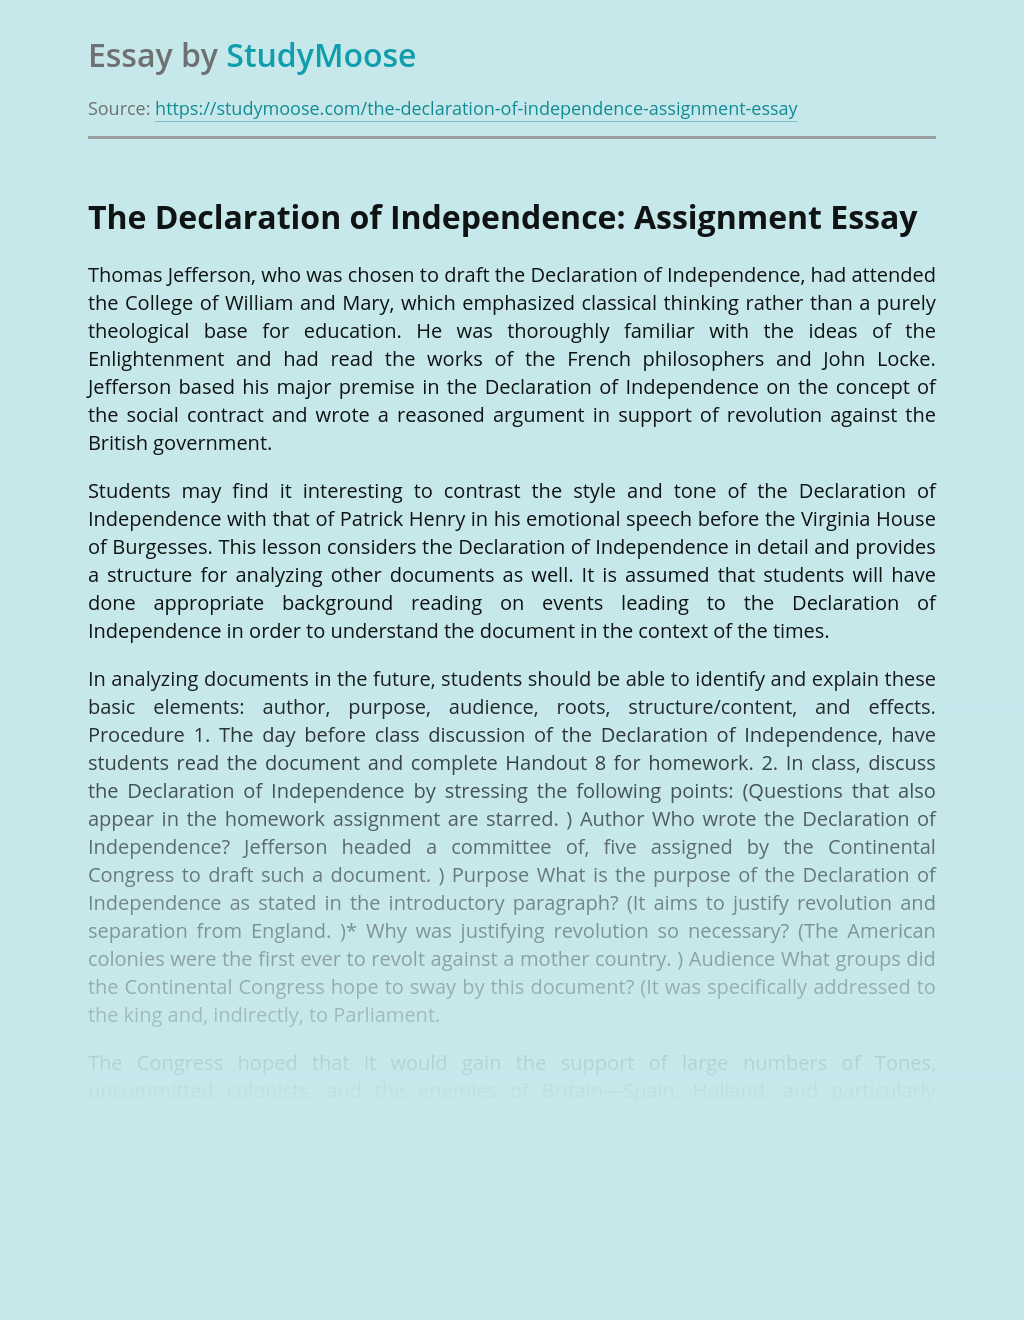 The Declaration of Independence: Assignment